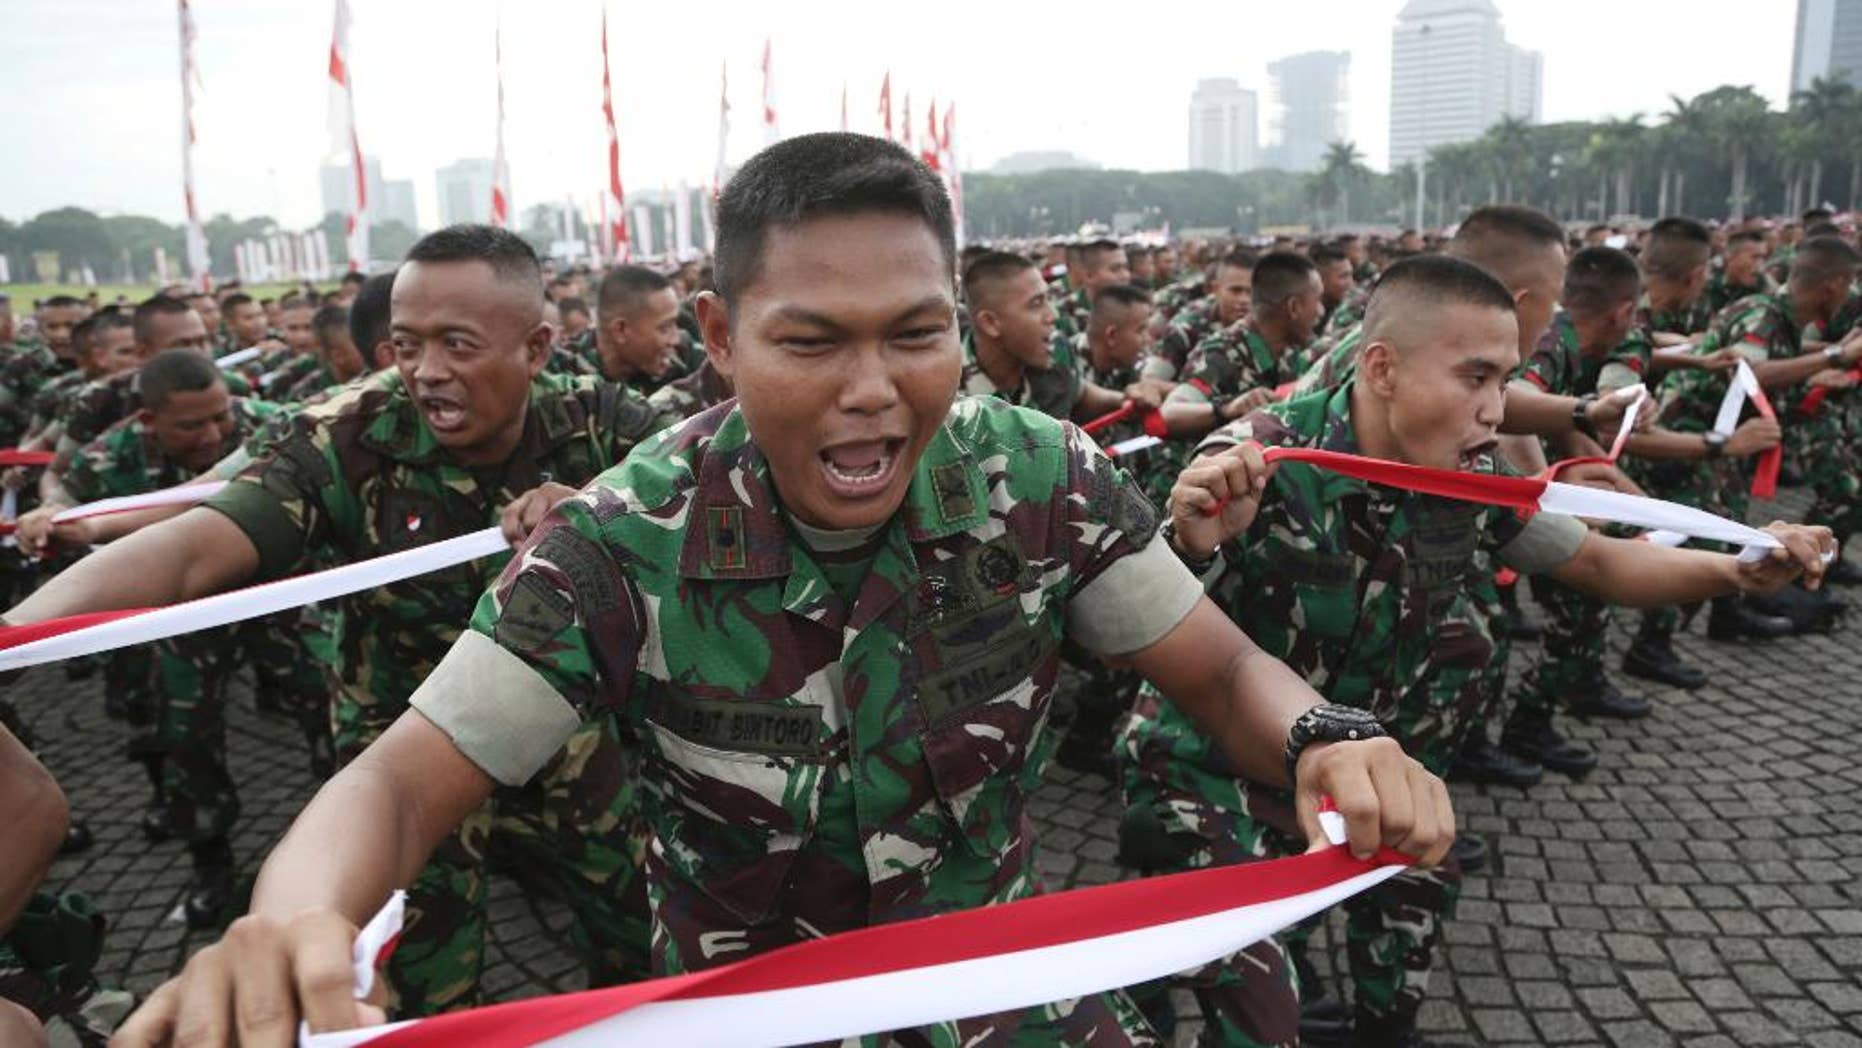 Indonesian soldiers perform national flag -colored headbands during a military-sponsored interfaith rally held ahead of the planned Dec. 2 Muslim protest against Jakarta Governor Basuki Tjahaja Purnama in Jakarta, Indonesia, Wednesday, Nov. 30, 2016. Thousands of Indonesians have joined interfaith rallies around the country organized by the military in an attempt todemonstrate national unity as religious and racial tensions divide the world's largest Muslim nation. (AP Photo/Achmad Ibrahim)